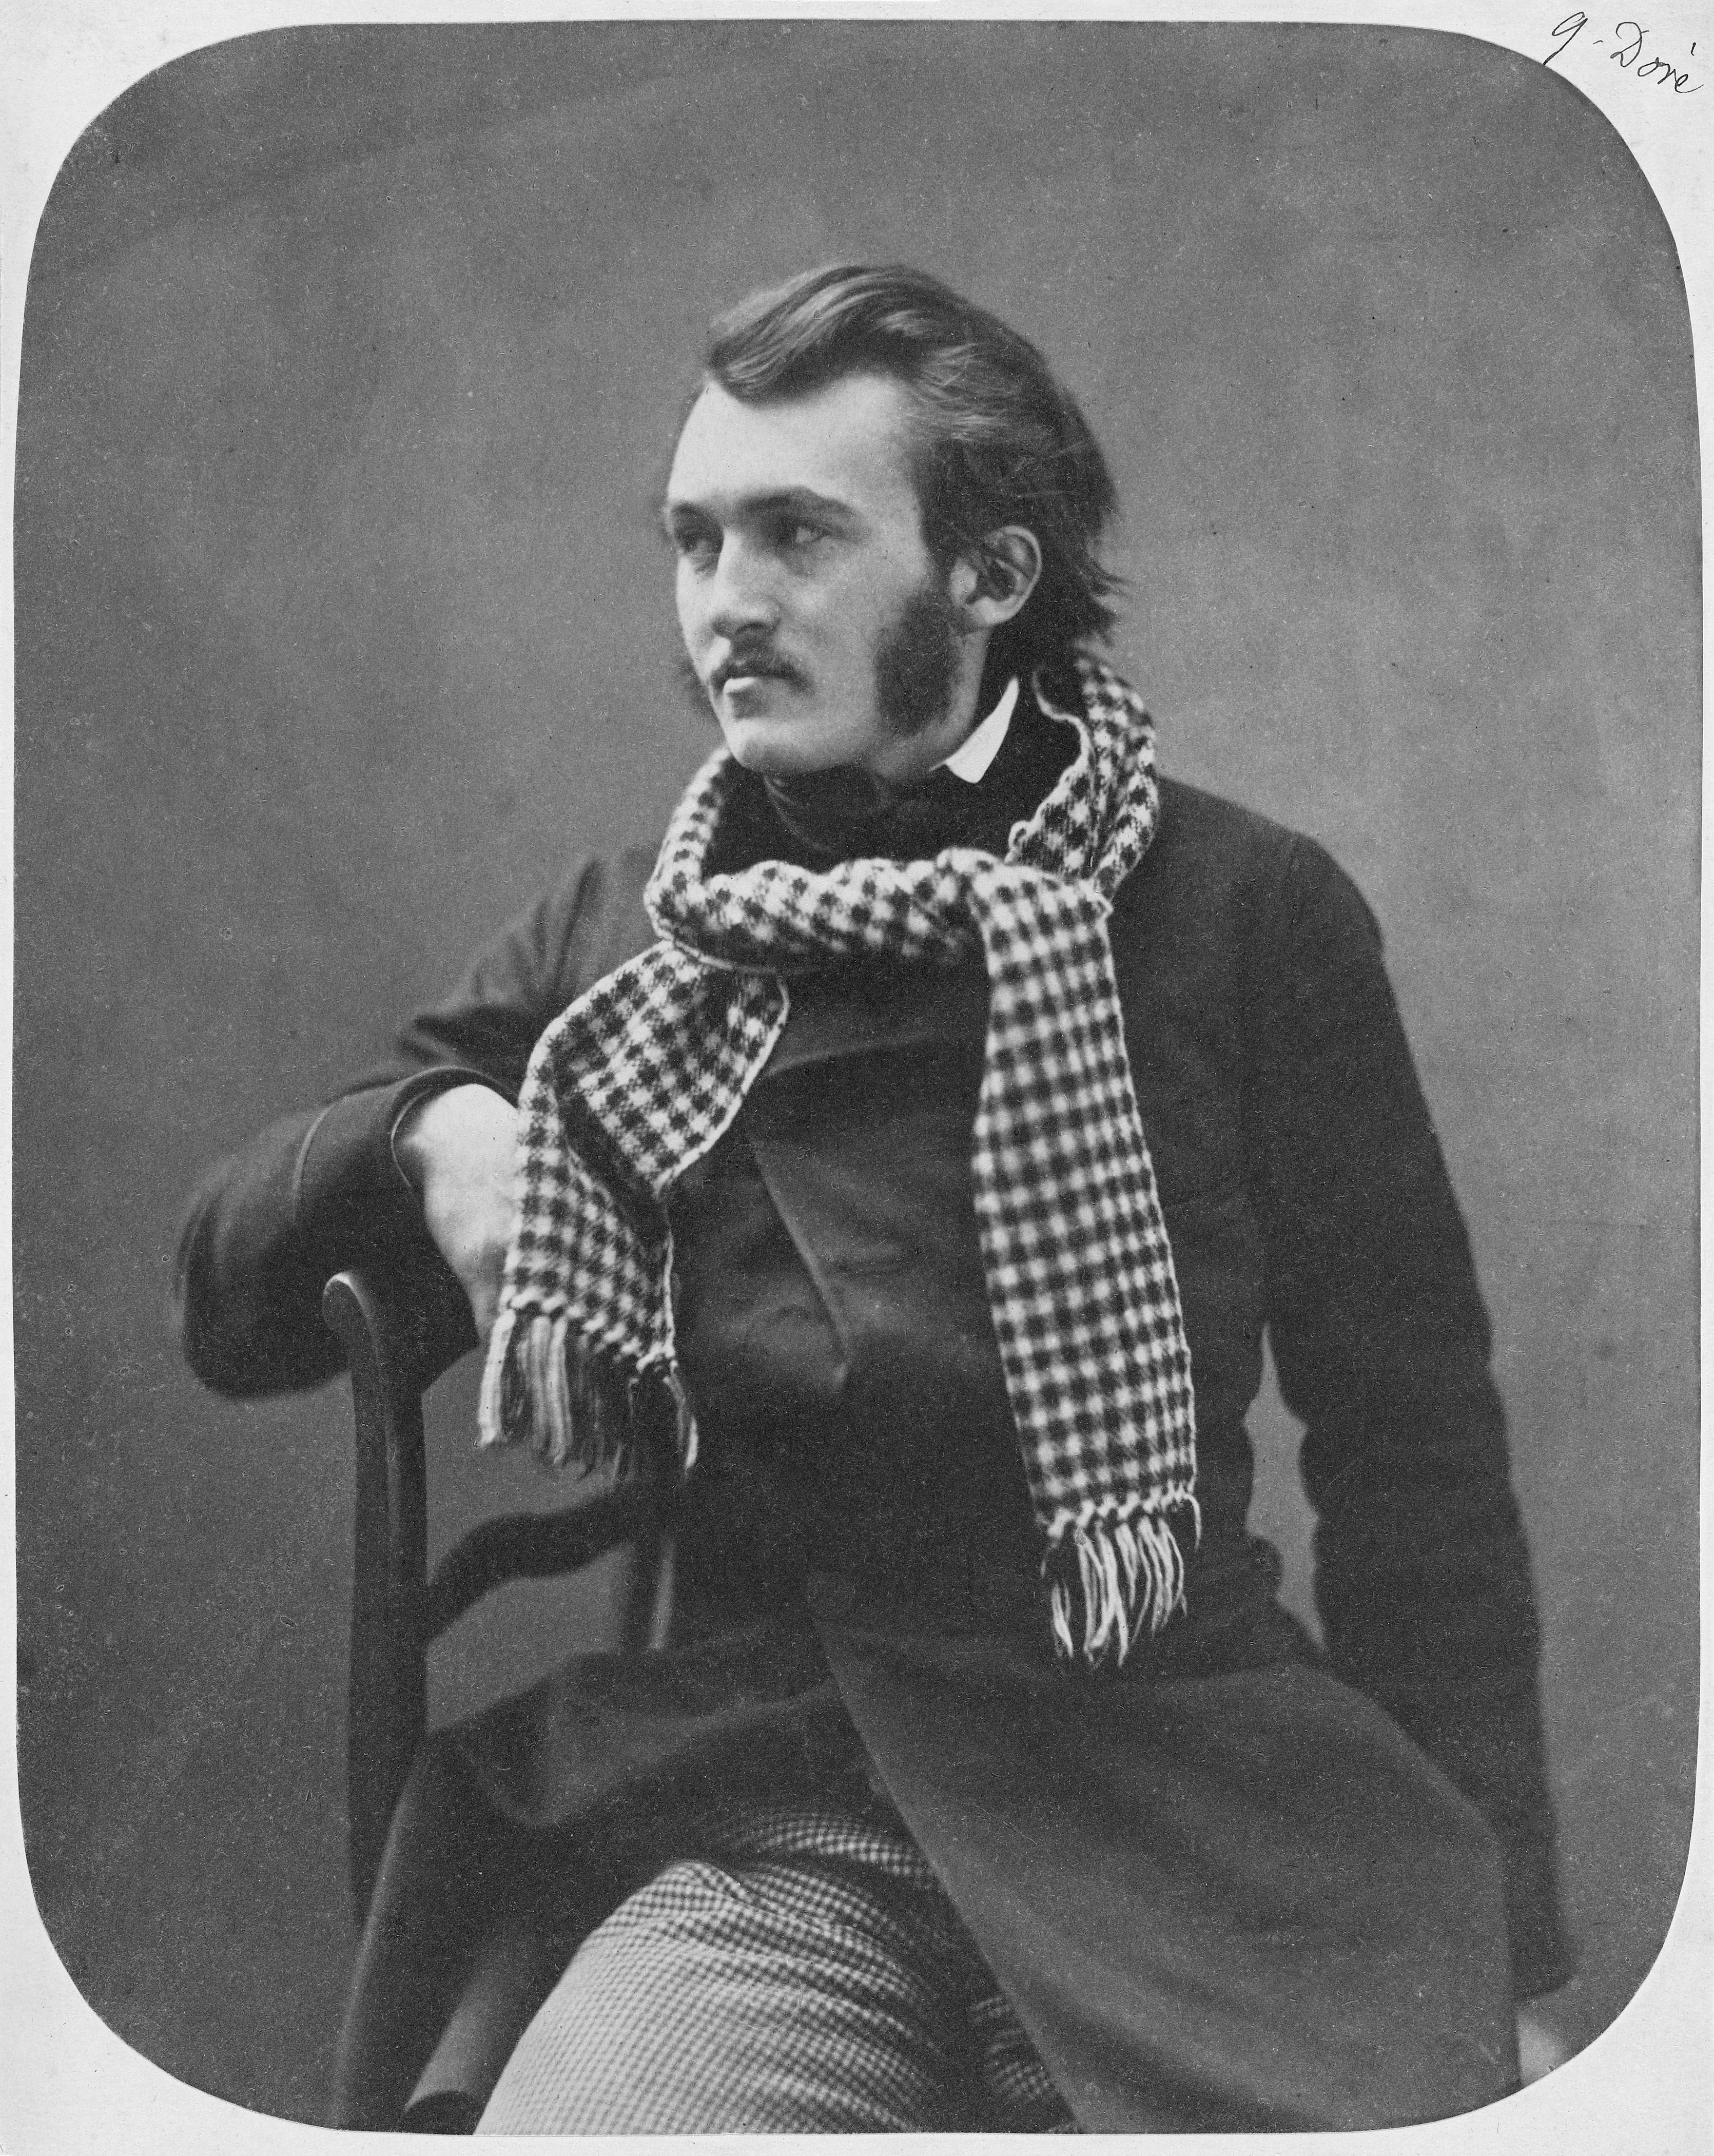 File:Gustave Doré by Nadar - Getty Museum.jpg - Wikimedia Commons